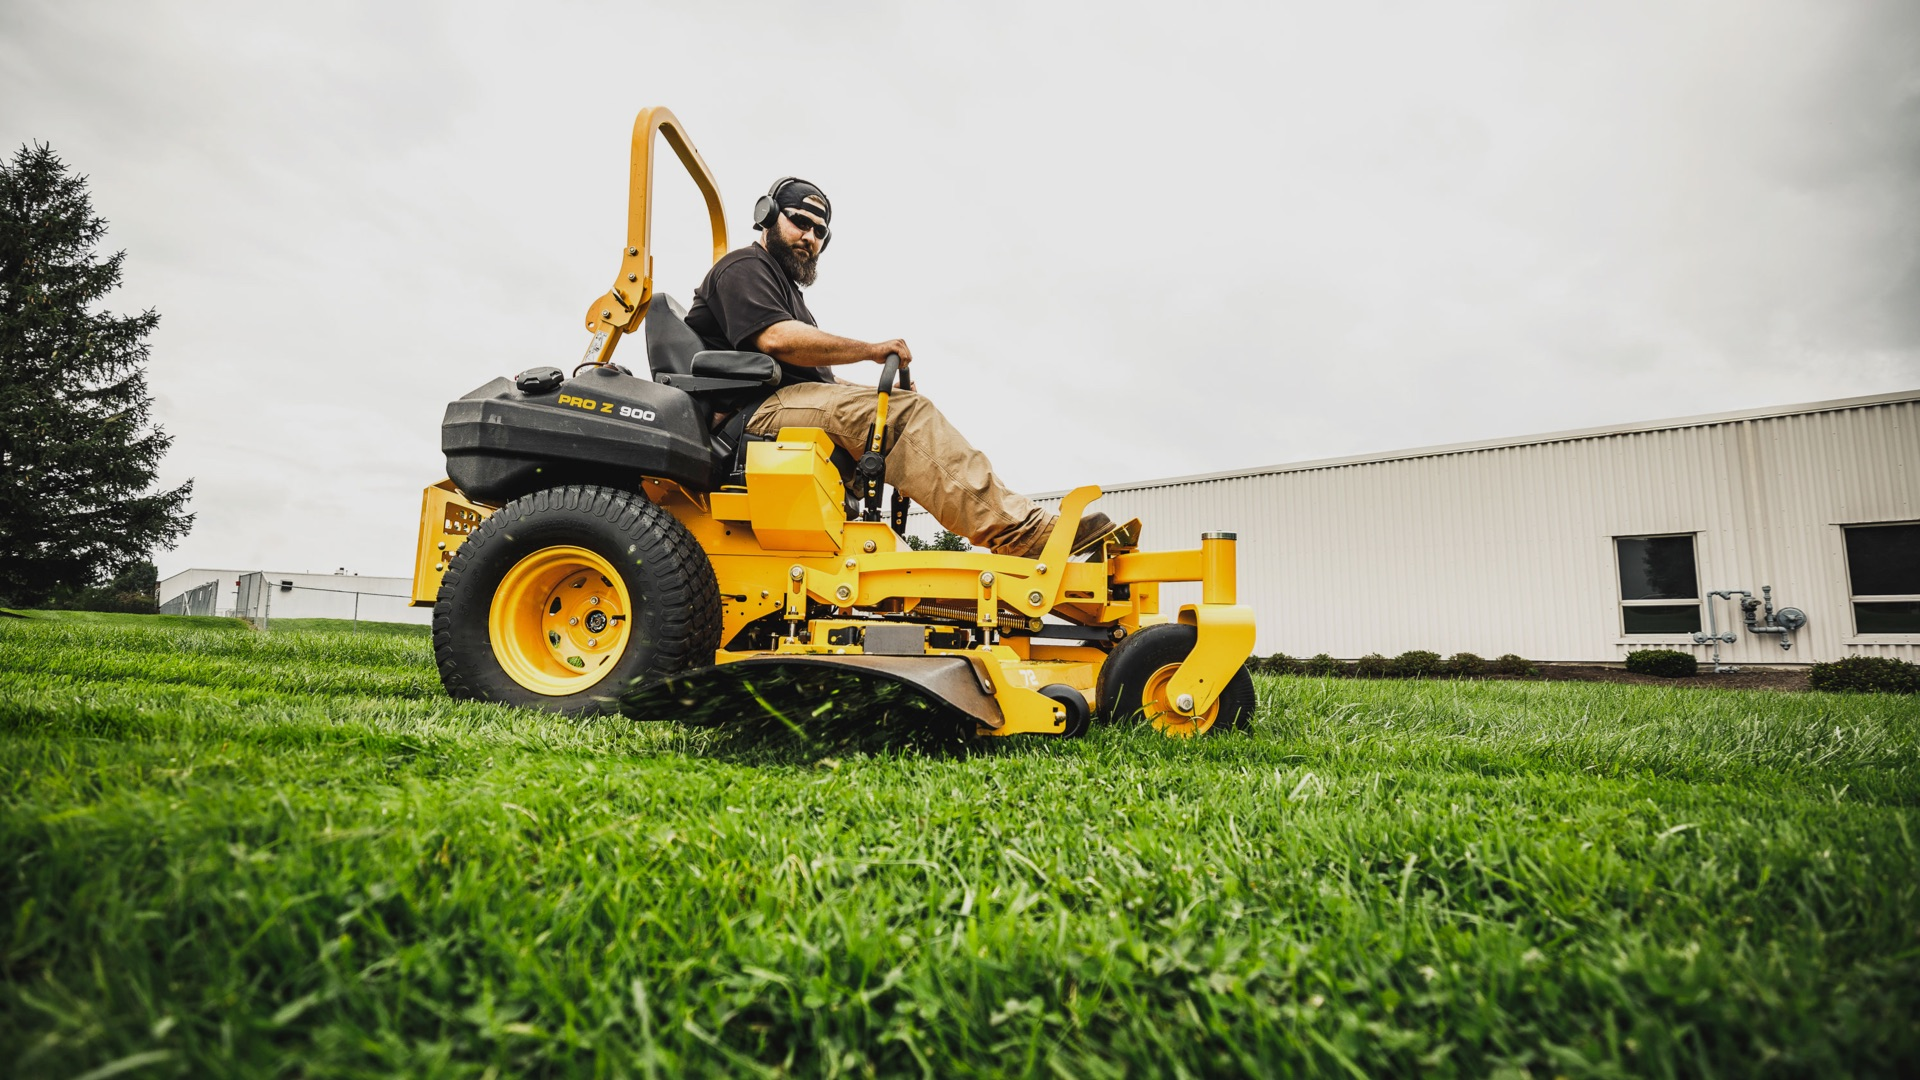 Commercial Zero-Turn Mowers | Cub Cadet US